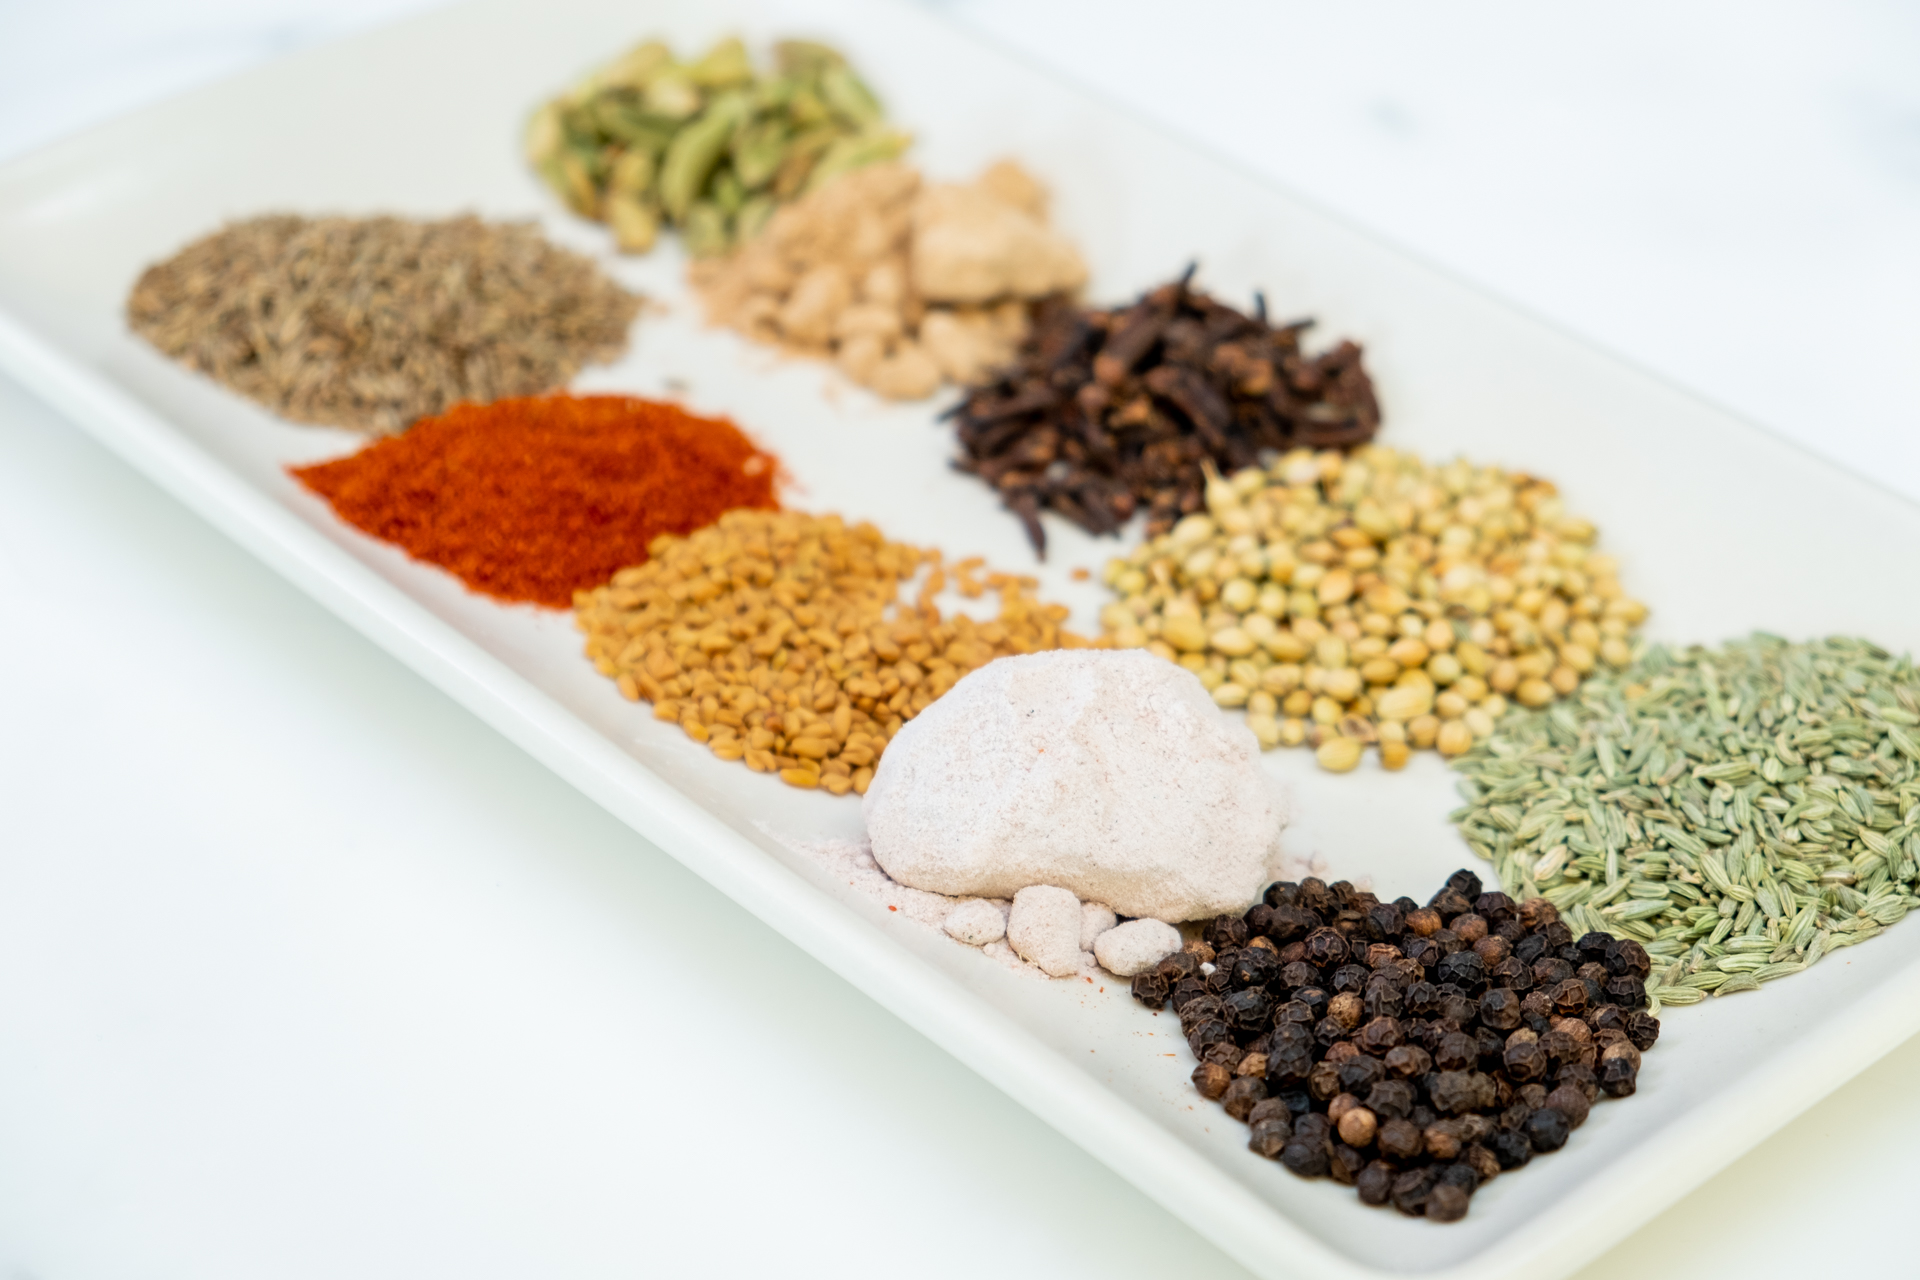 All of the ingredients for Chaat Masala